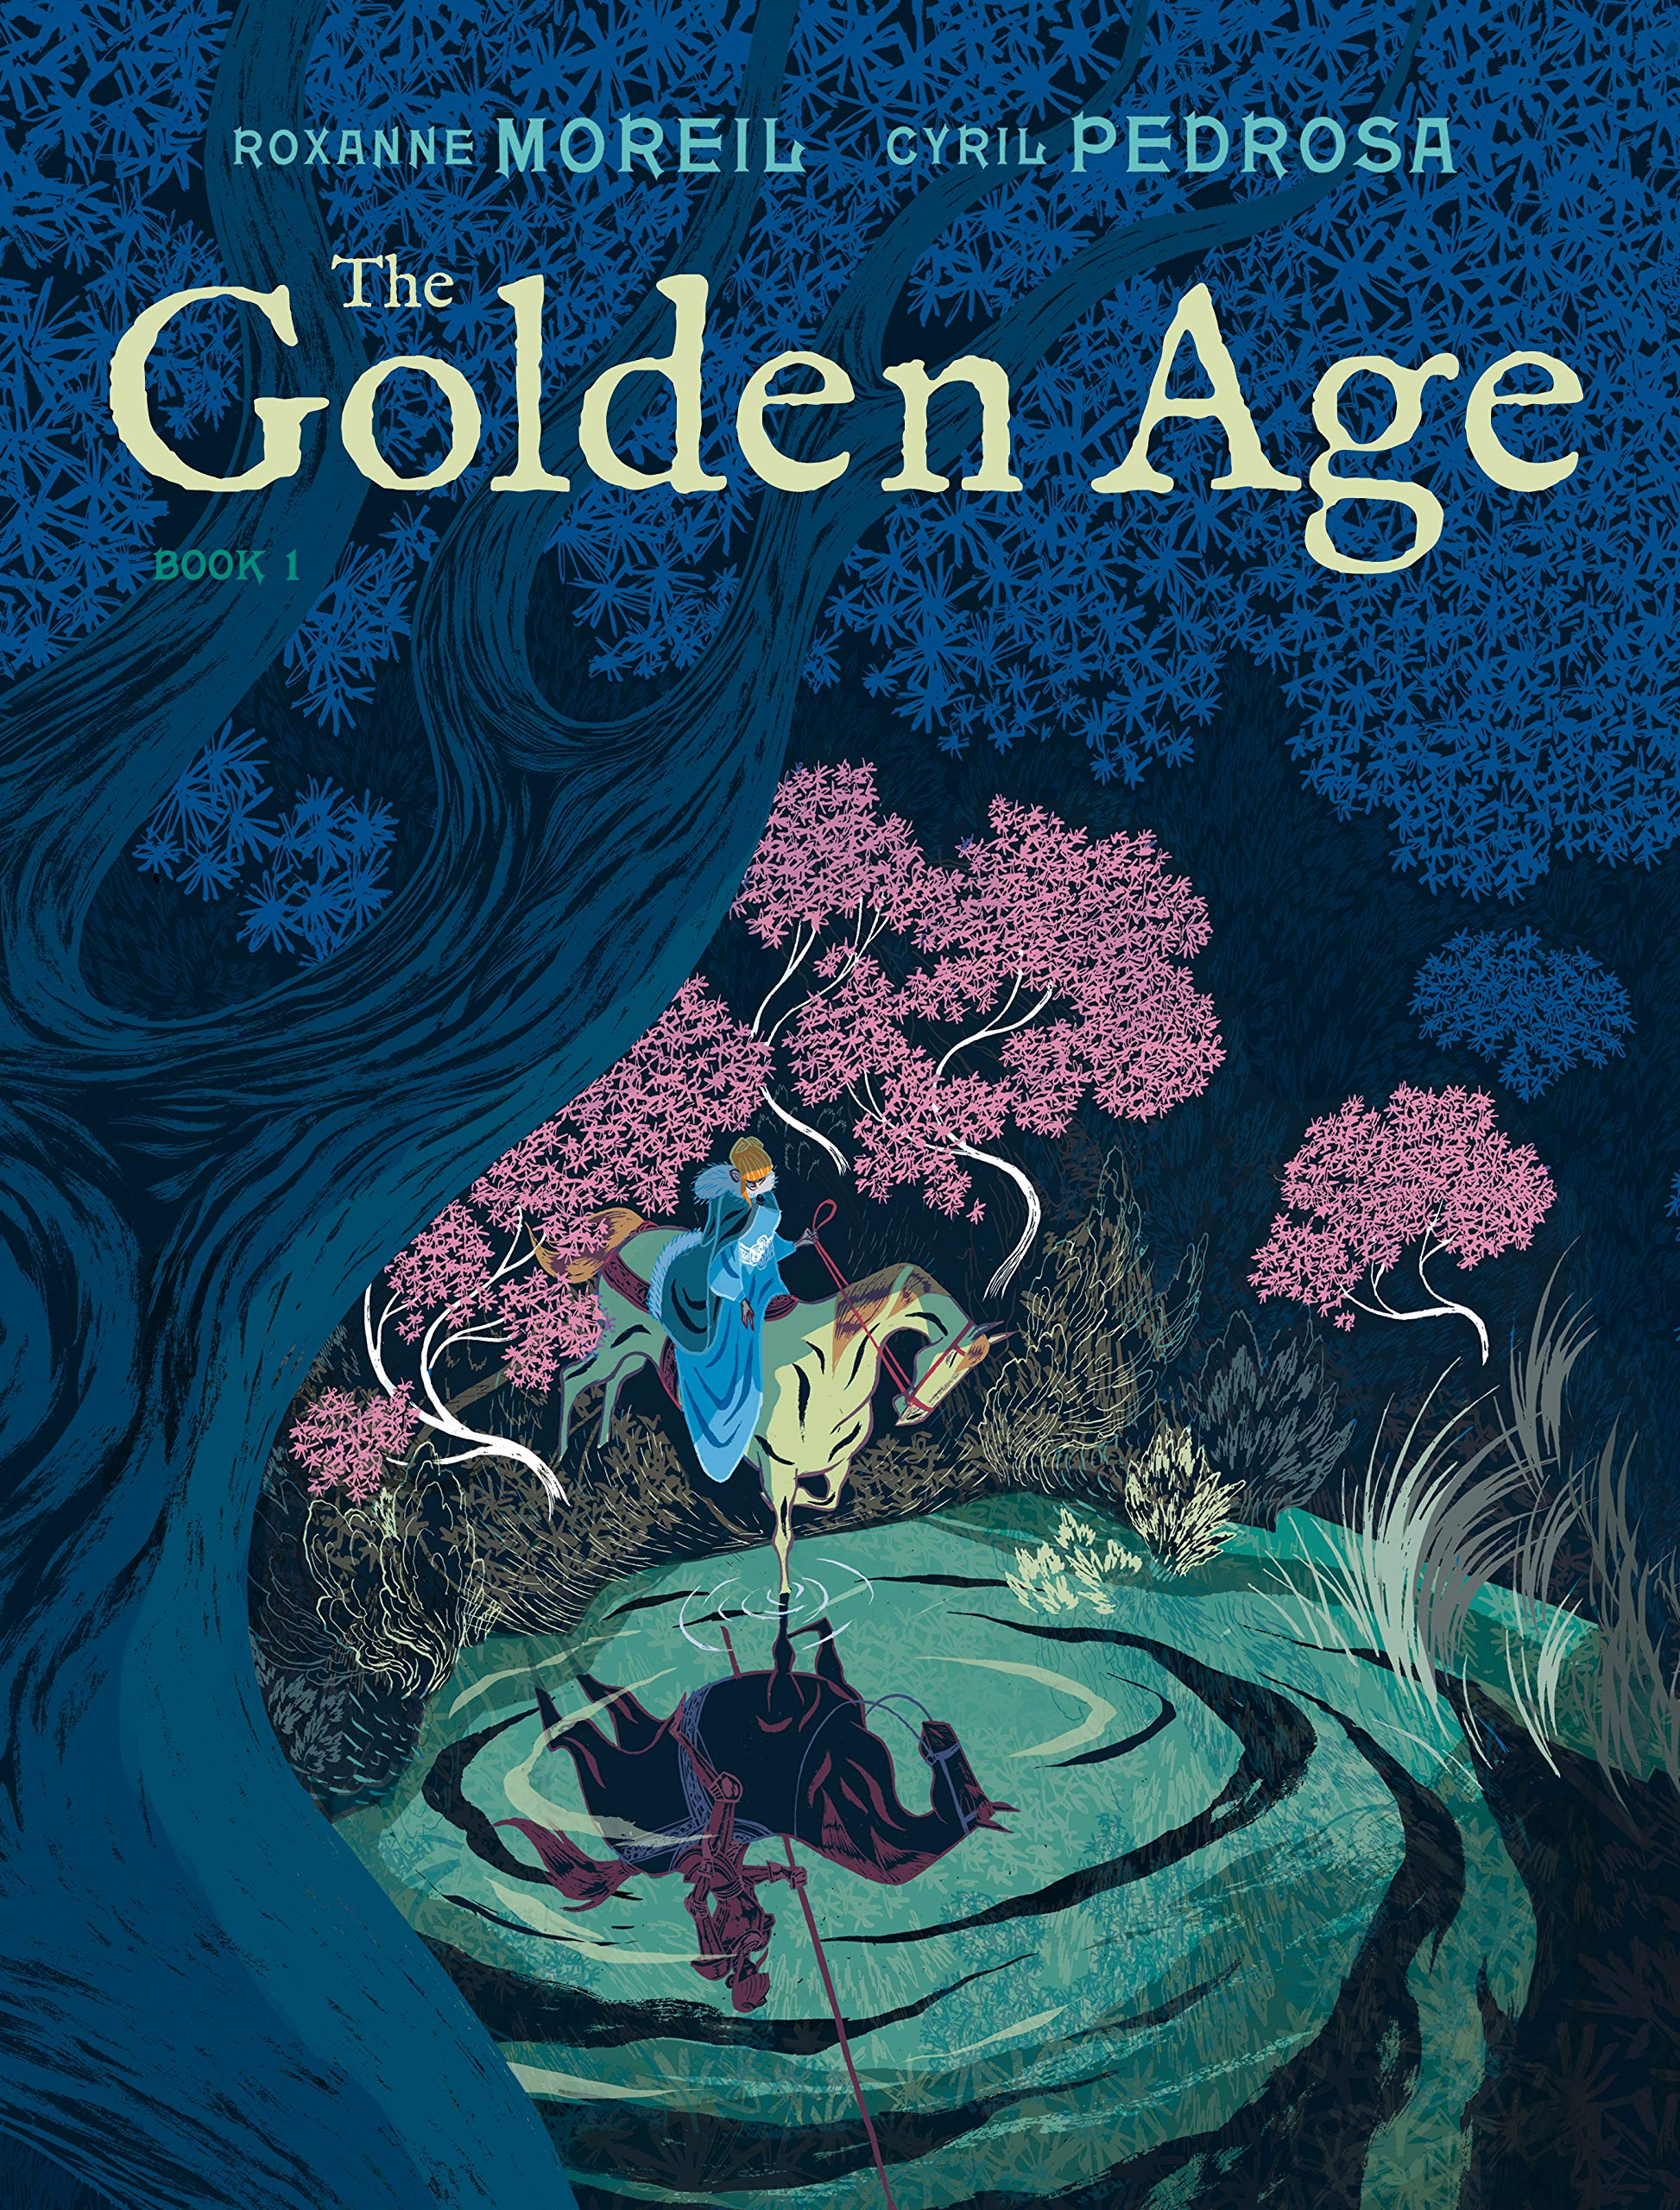 Graphic Novels for Winter 2020: The Golden Age